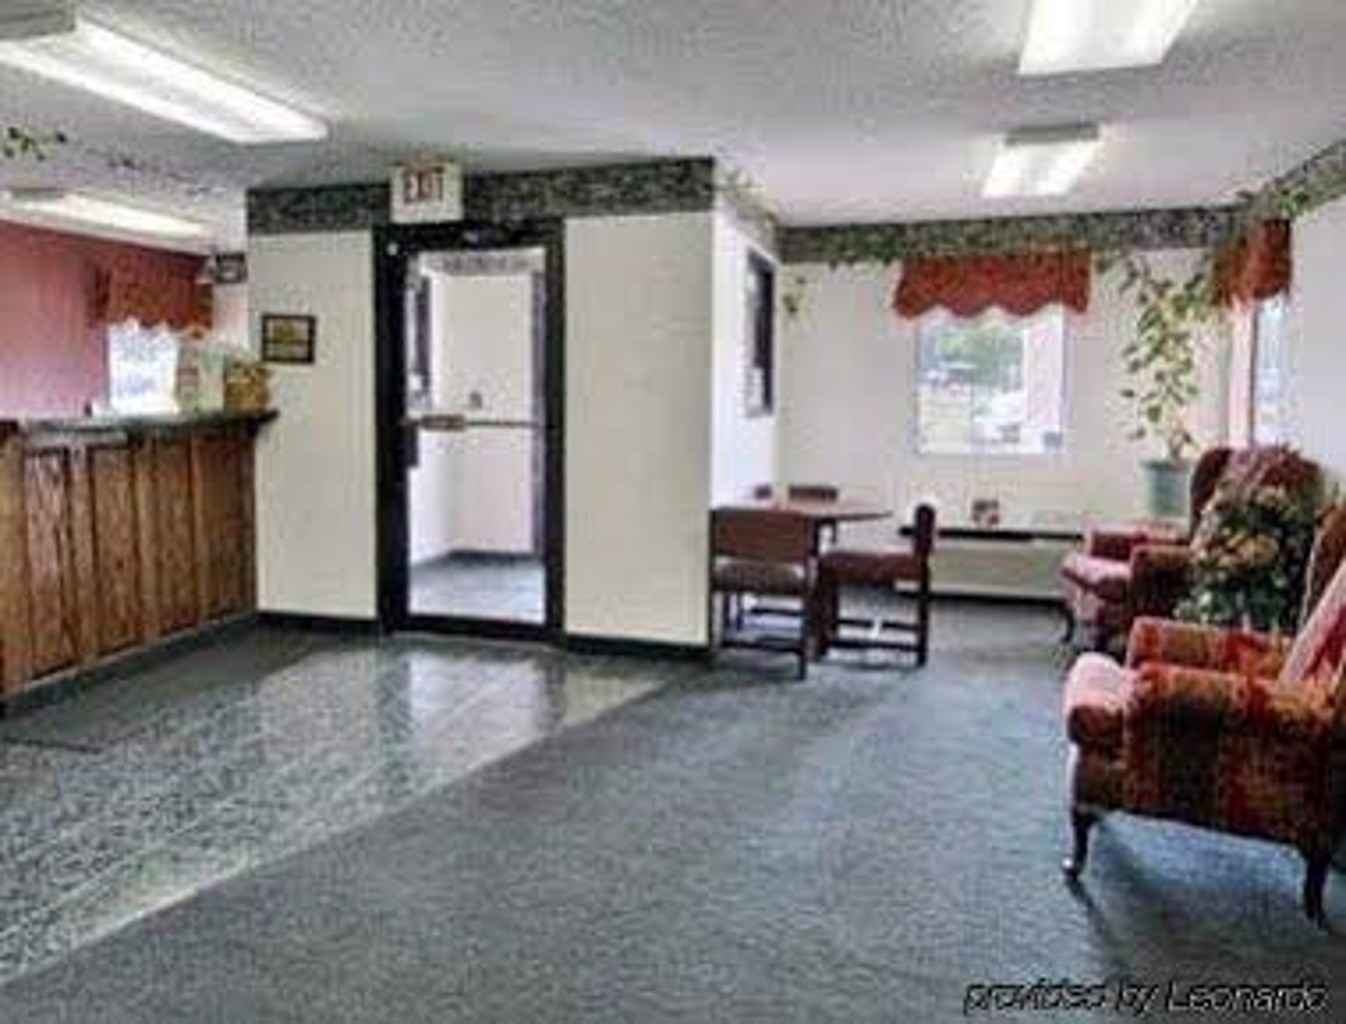 Gallery image of Macon Days Inn